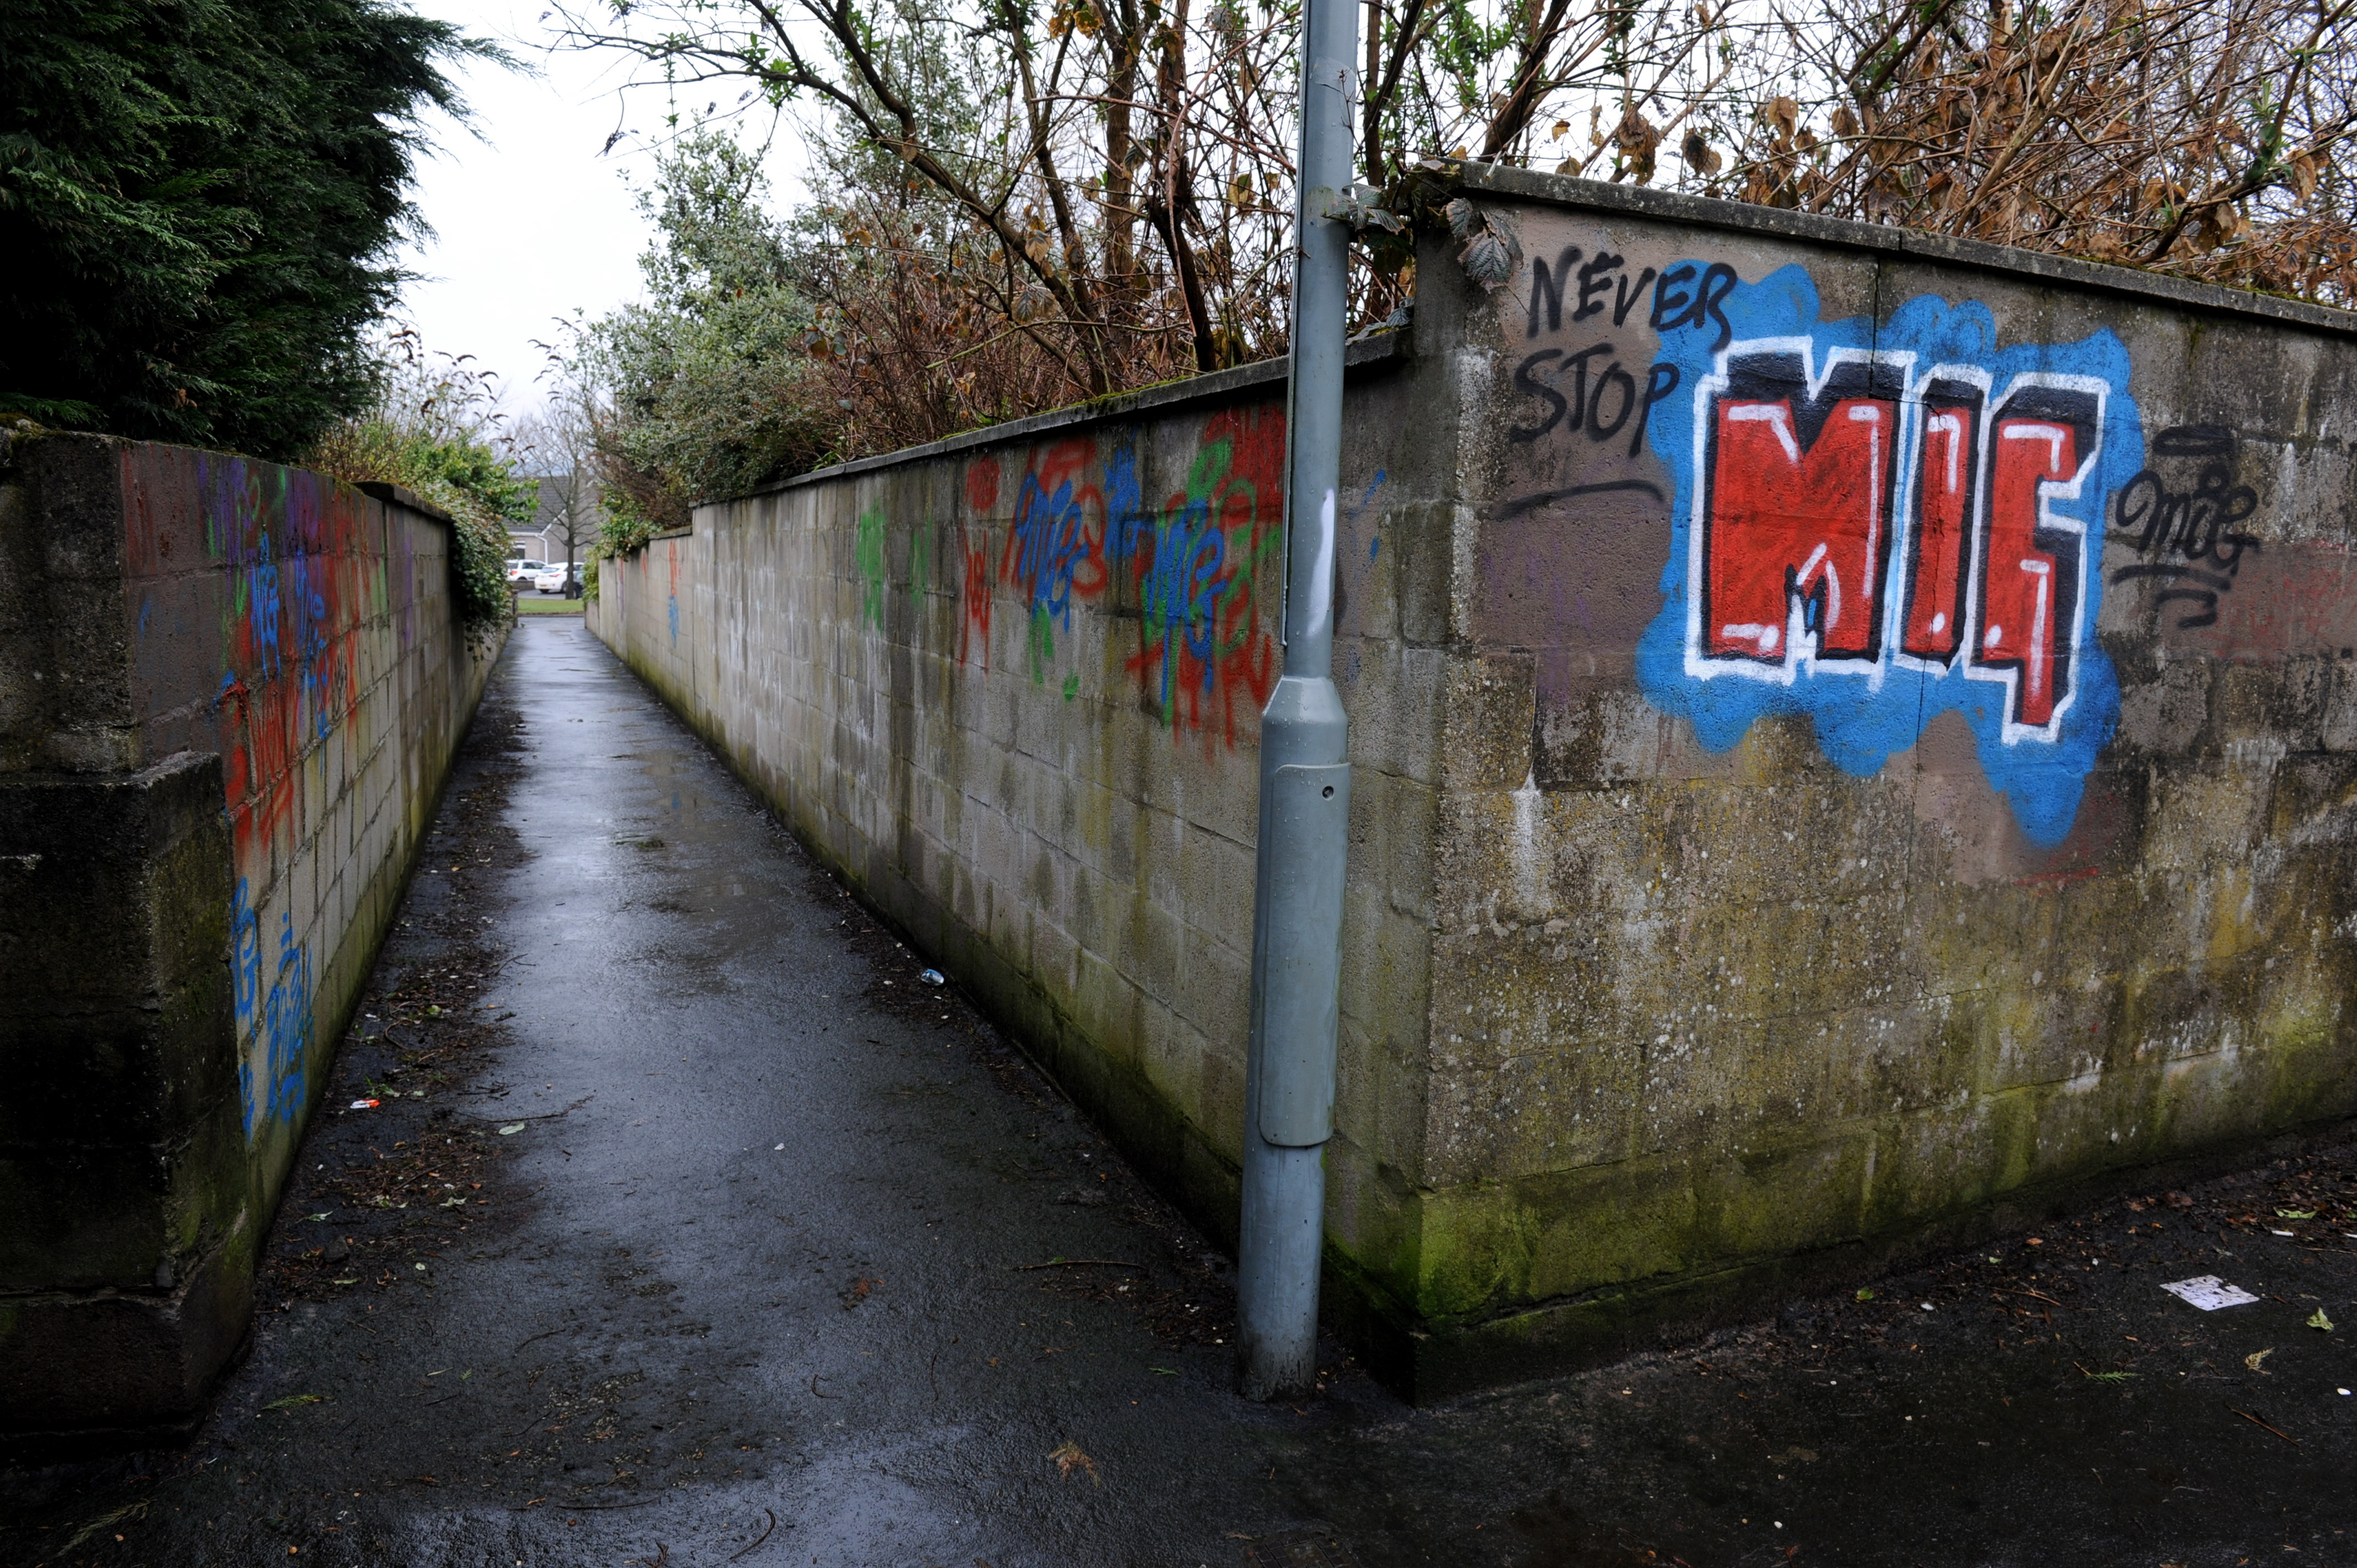 The graffiti on the lane between Glenhome Avenue and Glenhome Gardens in Dyce, Aberdeen.